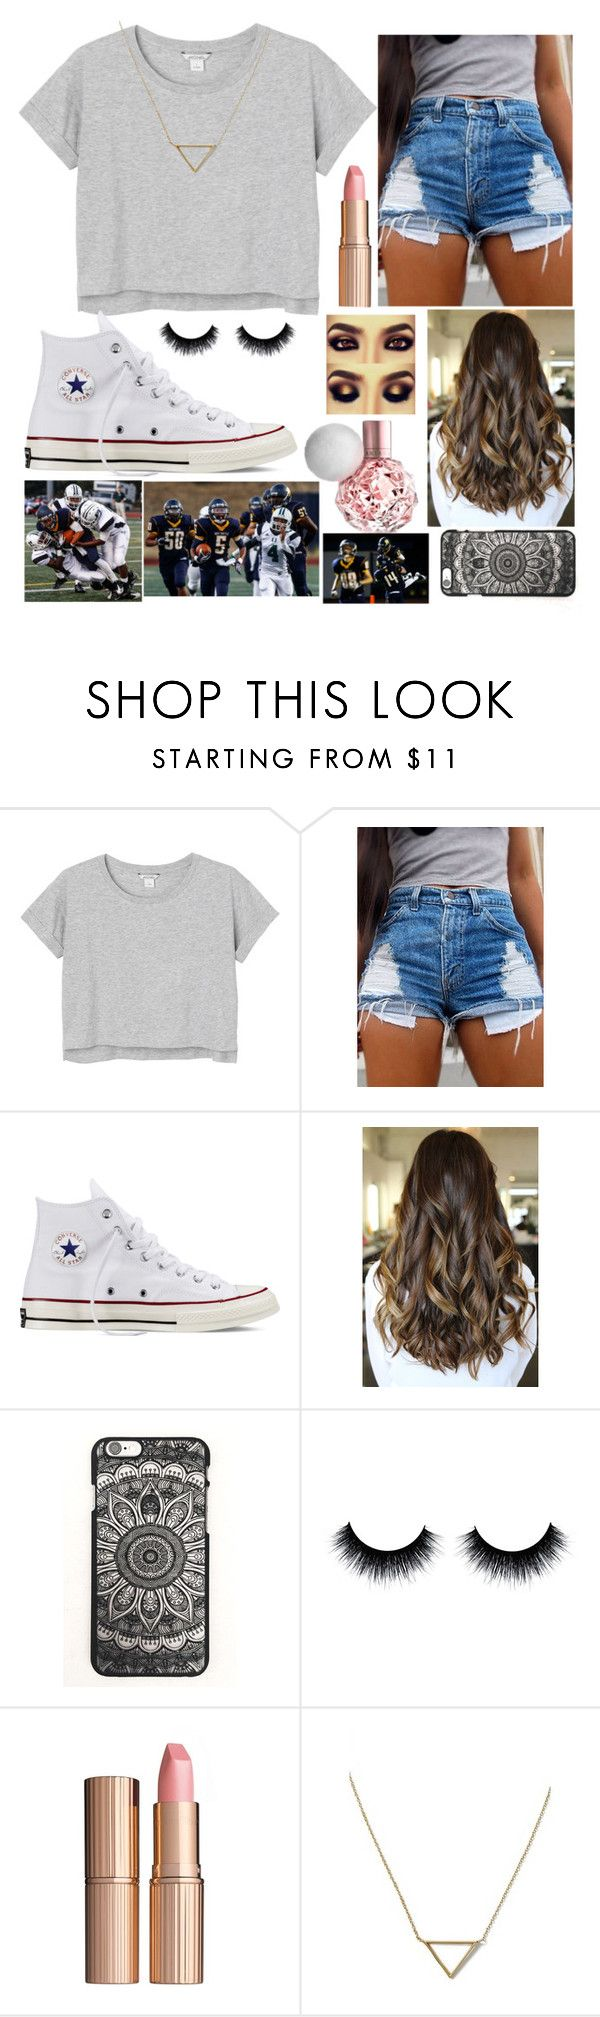 """""""Highschool football game"""" by fashongirl03 ❤ liked on Polyvore featuring Monki, Converse, Charlotte Tilbury and Banana Republic"""